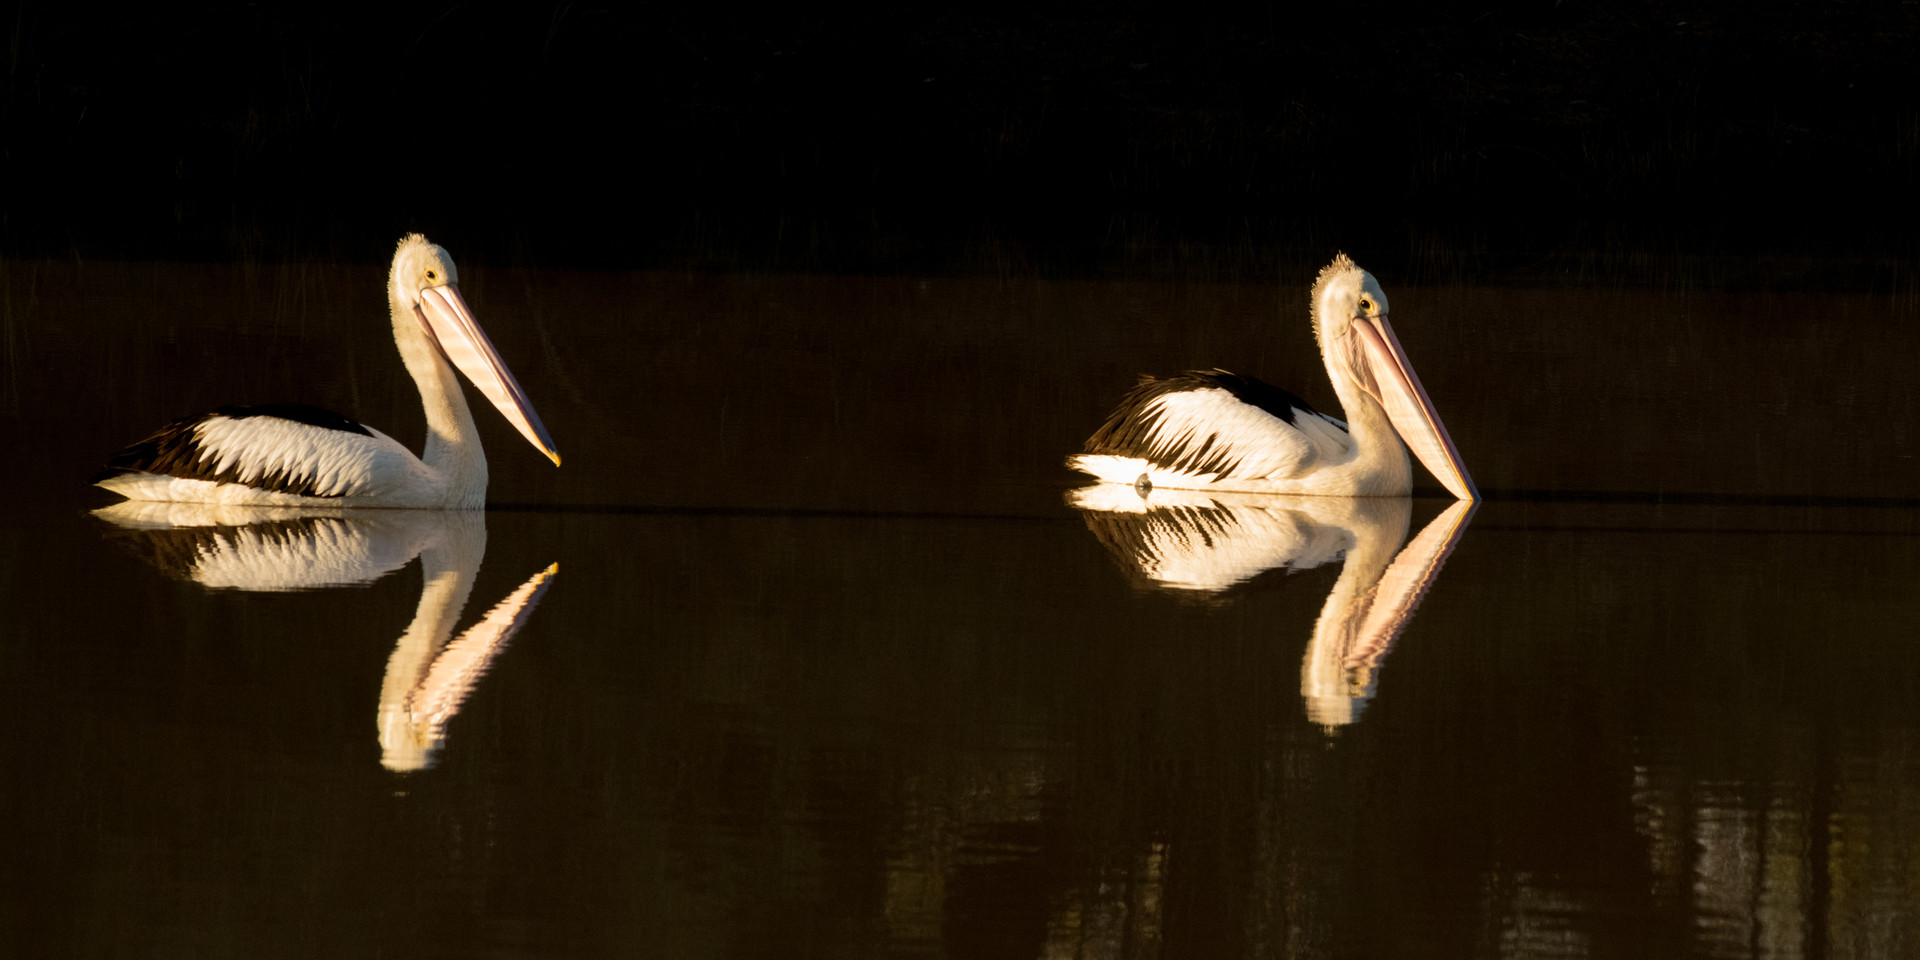 Mirrored pelicans at Noccundra water hole